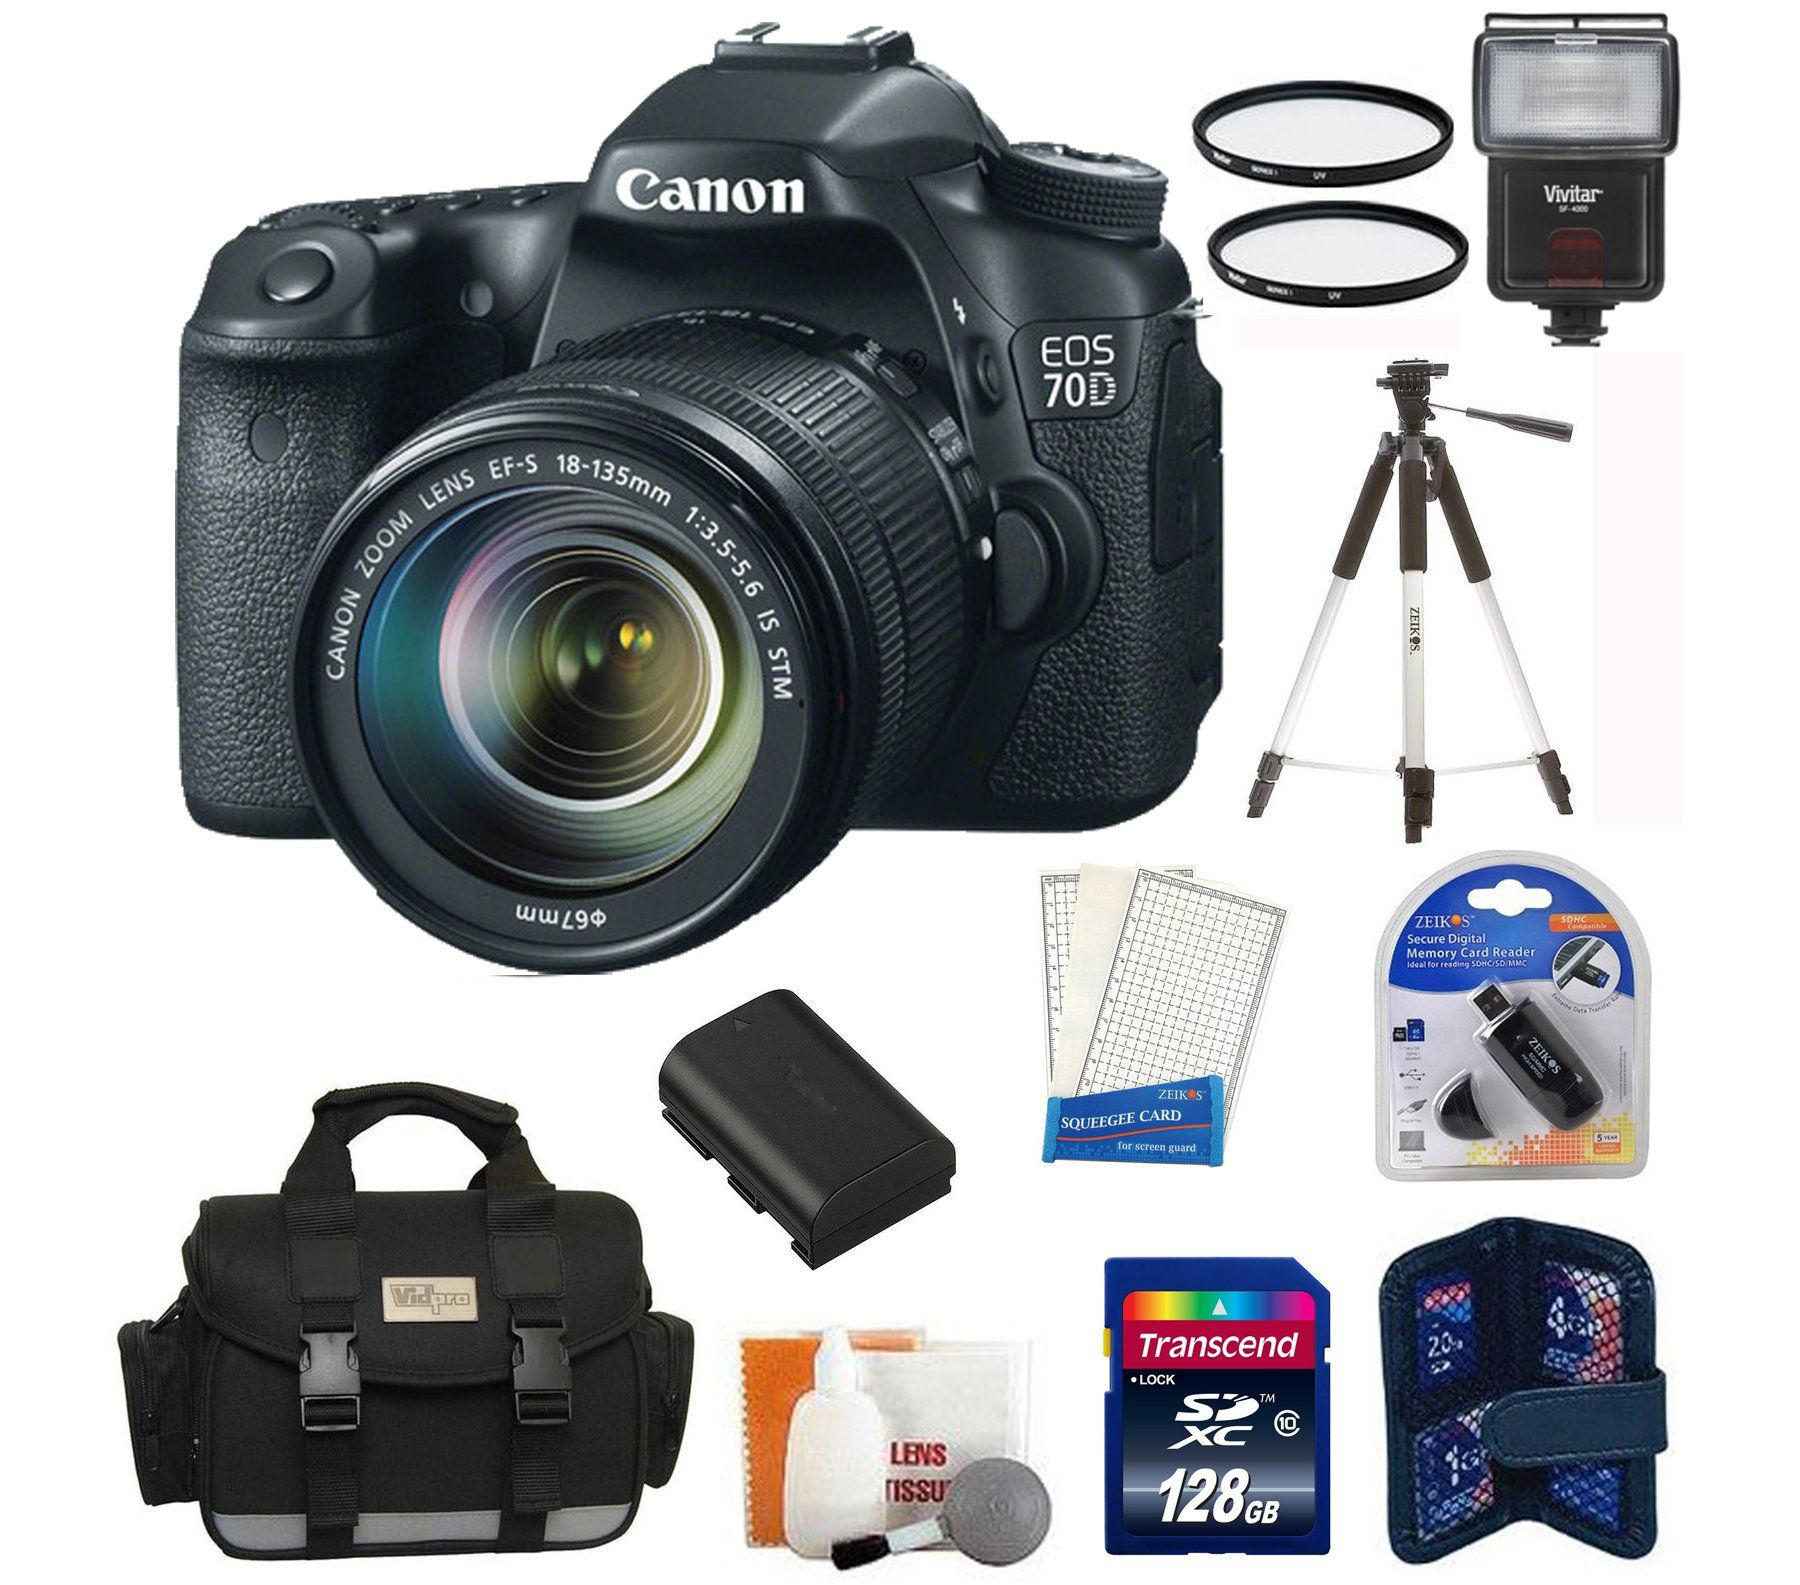 Canon EOS 70D DSLR Camera with 18-135mm STM f/3.5-5.6 Lens + High ...